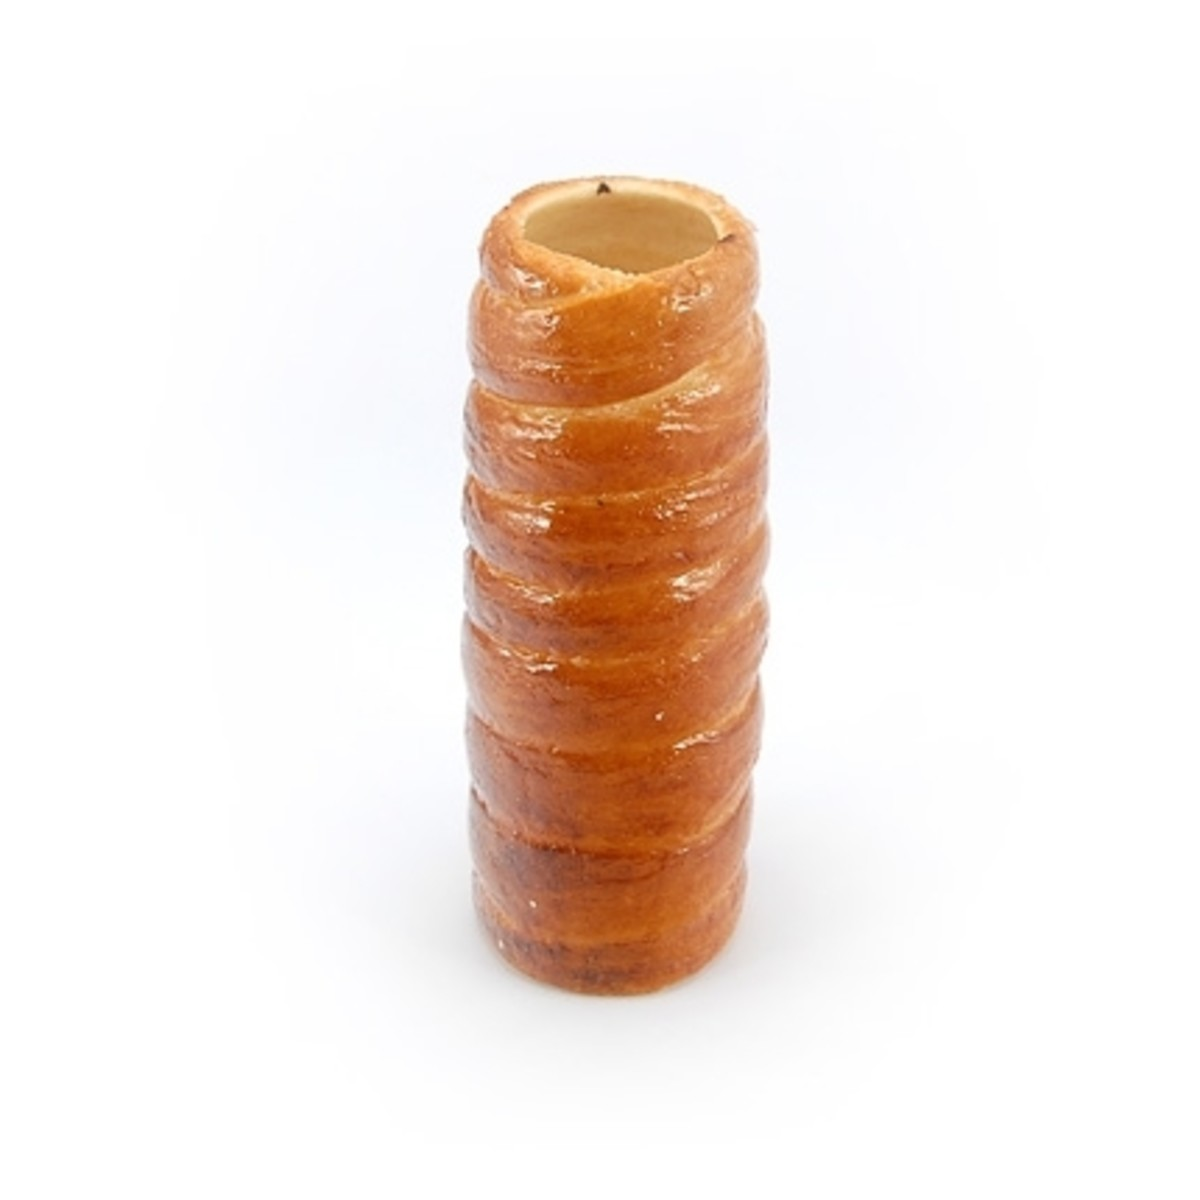 The perfect Chimney Cake